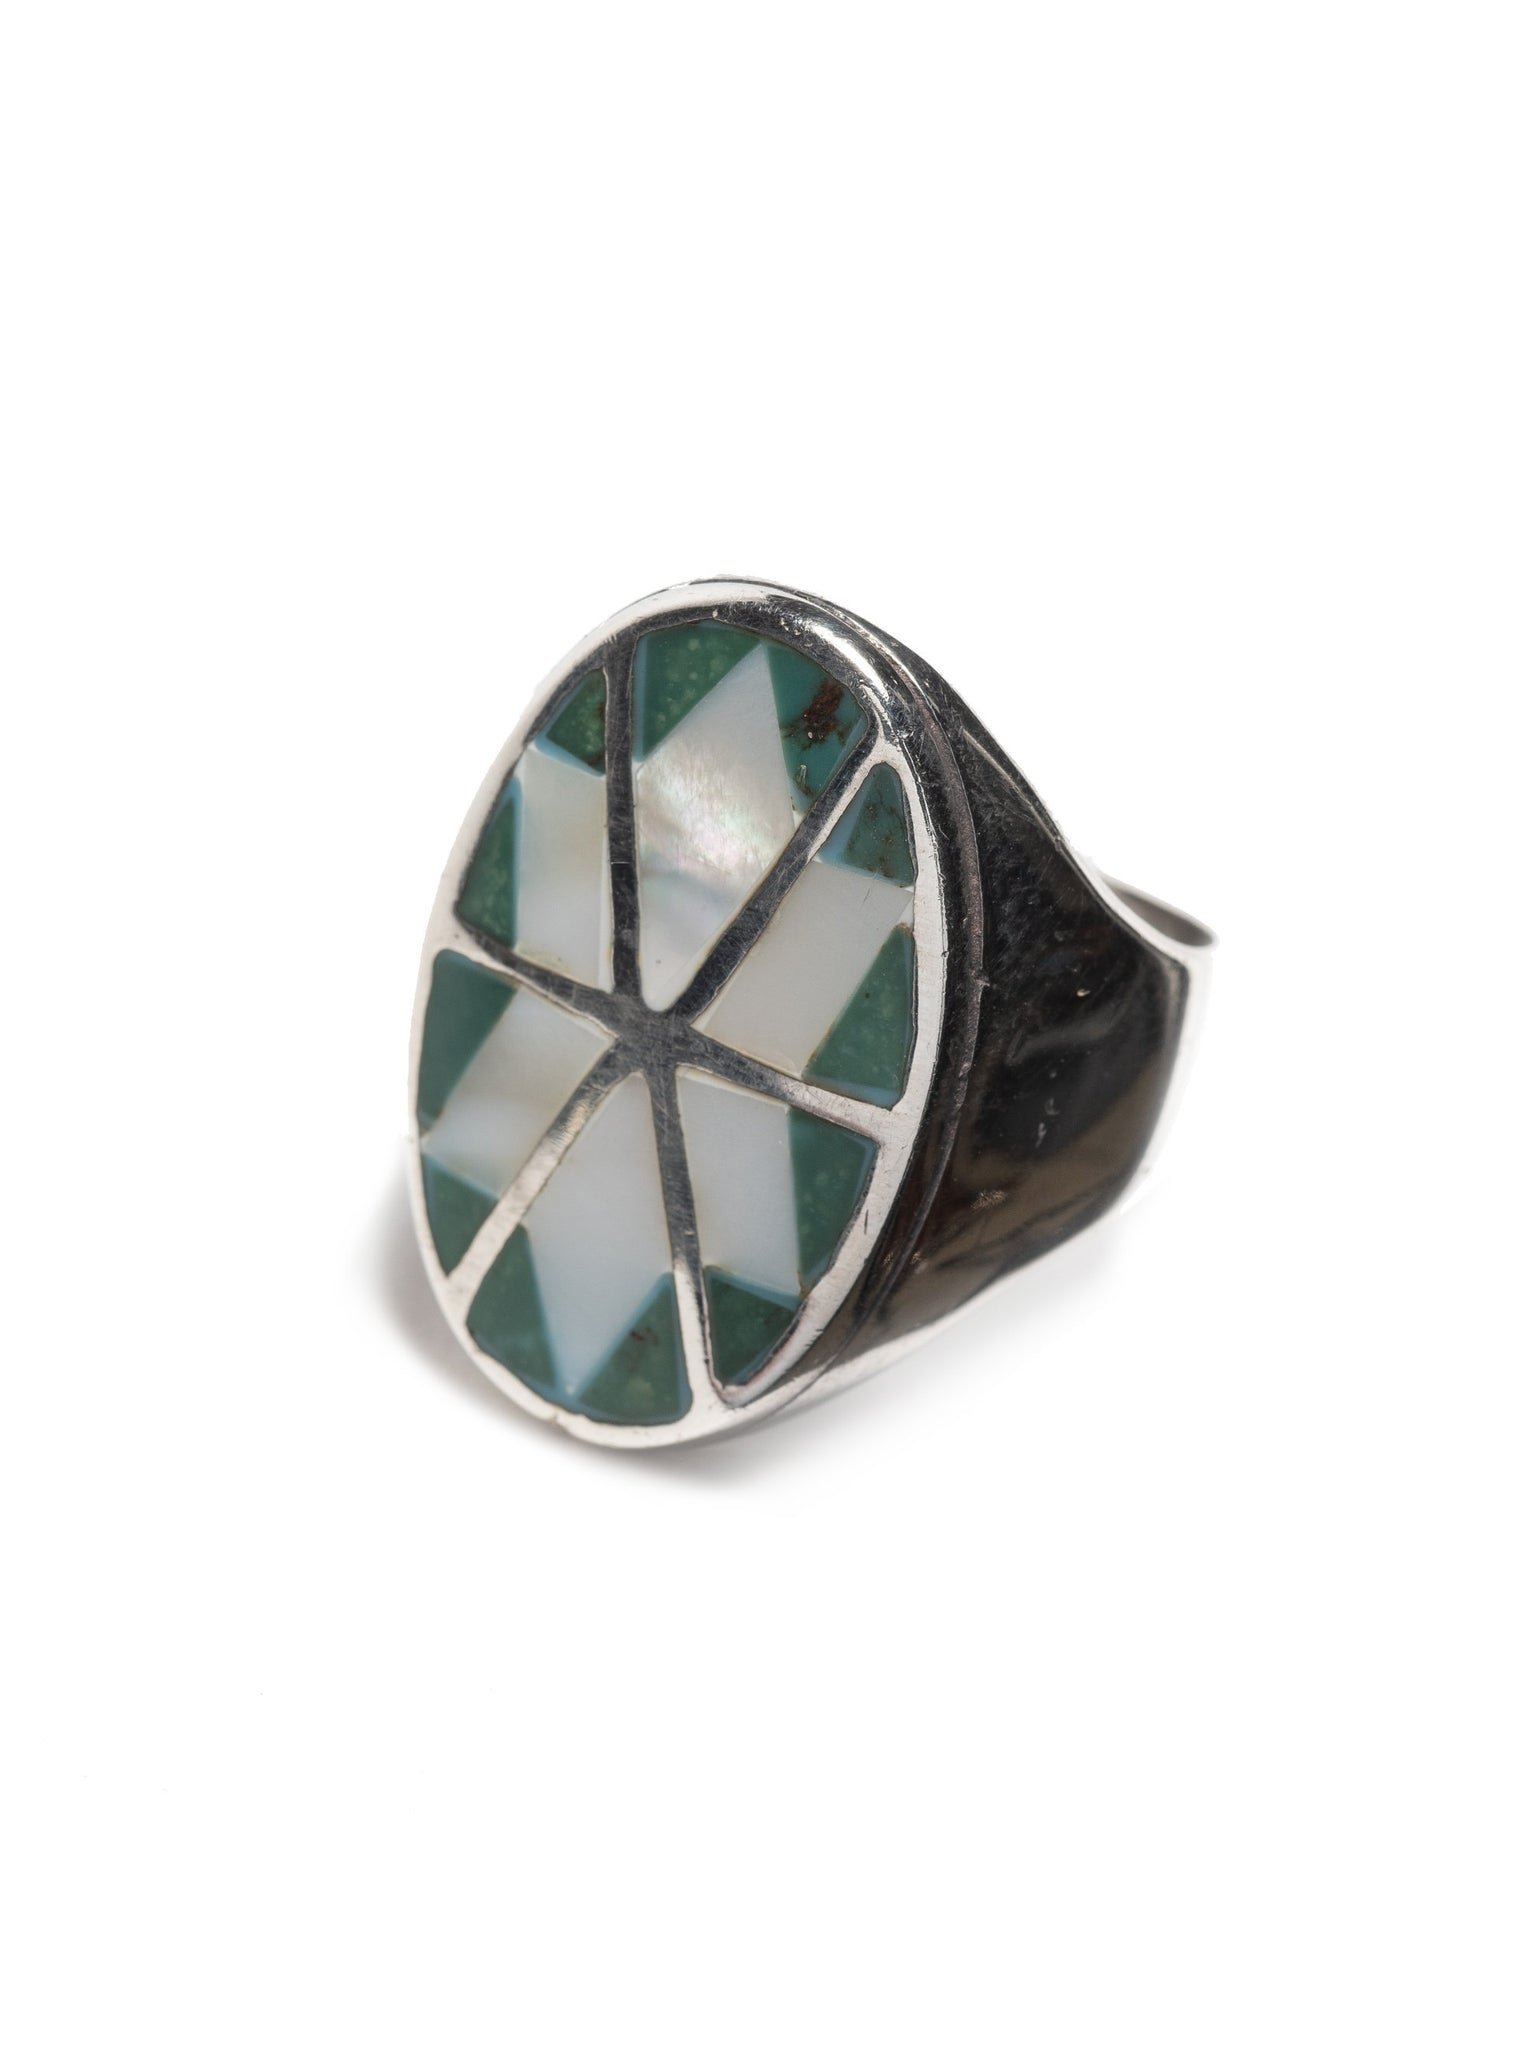 vintage-modern-sterling-silver-men-s-ring-with-inlayed-mother-of-pearl-turquoise